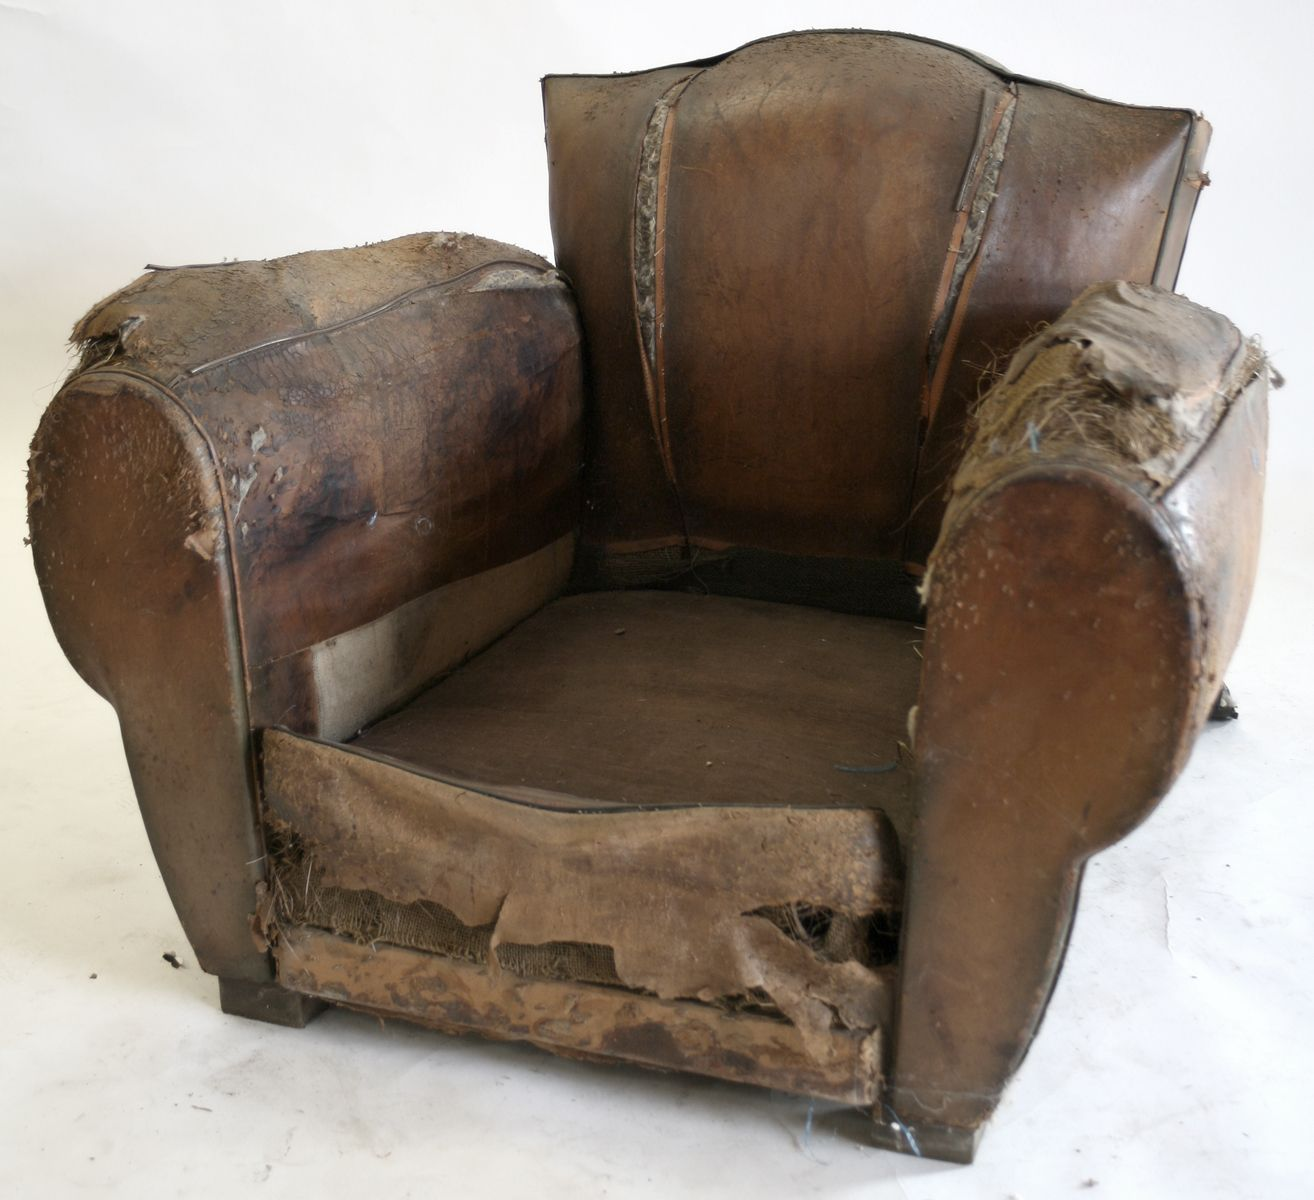 French Art Deco Club Chair Ready To Be Used For Display Or To Be Restored  At Style French Antiques In Los Angeles